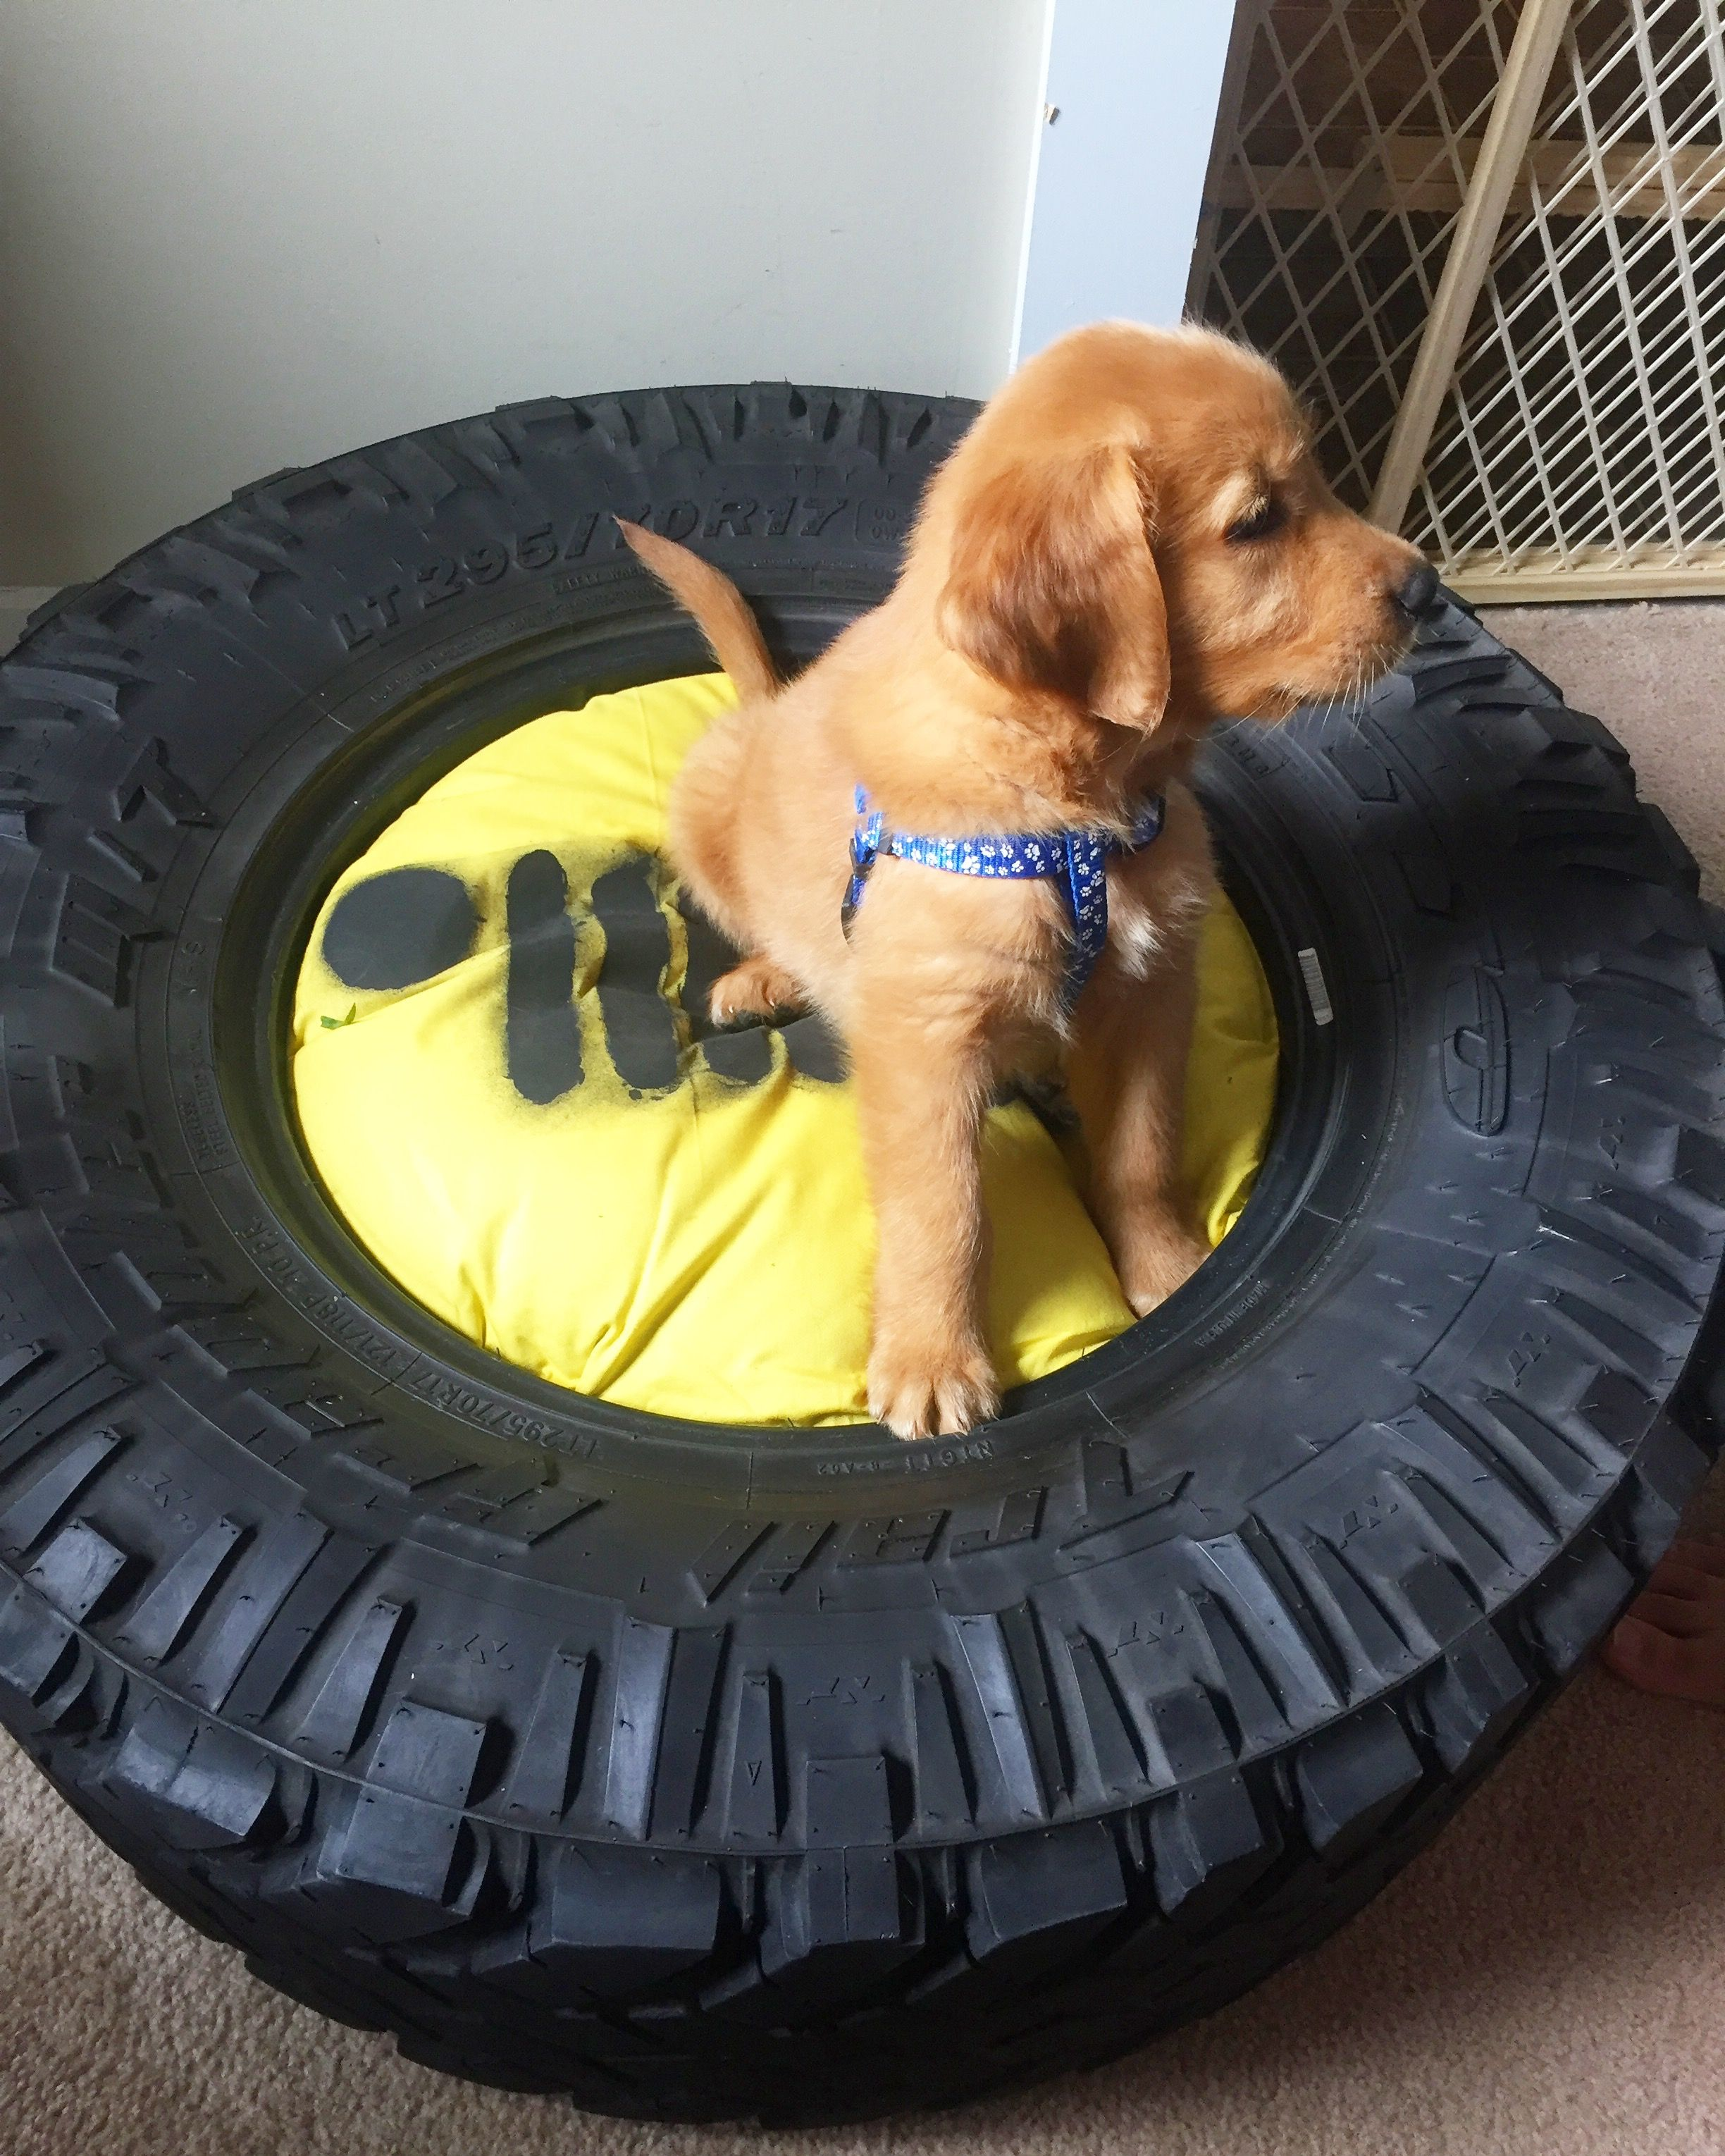 Jeep Tire Diy Dog Bed Diy Dog Bed Diy Dog Bed Dog Bed Dogs